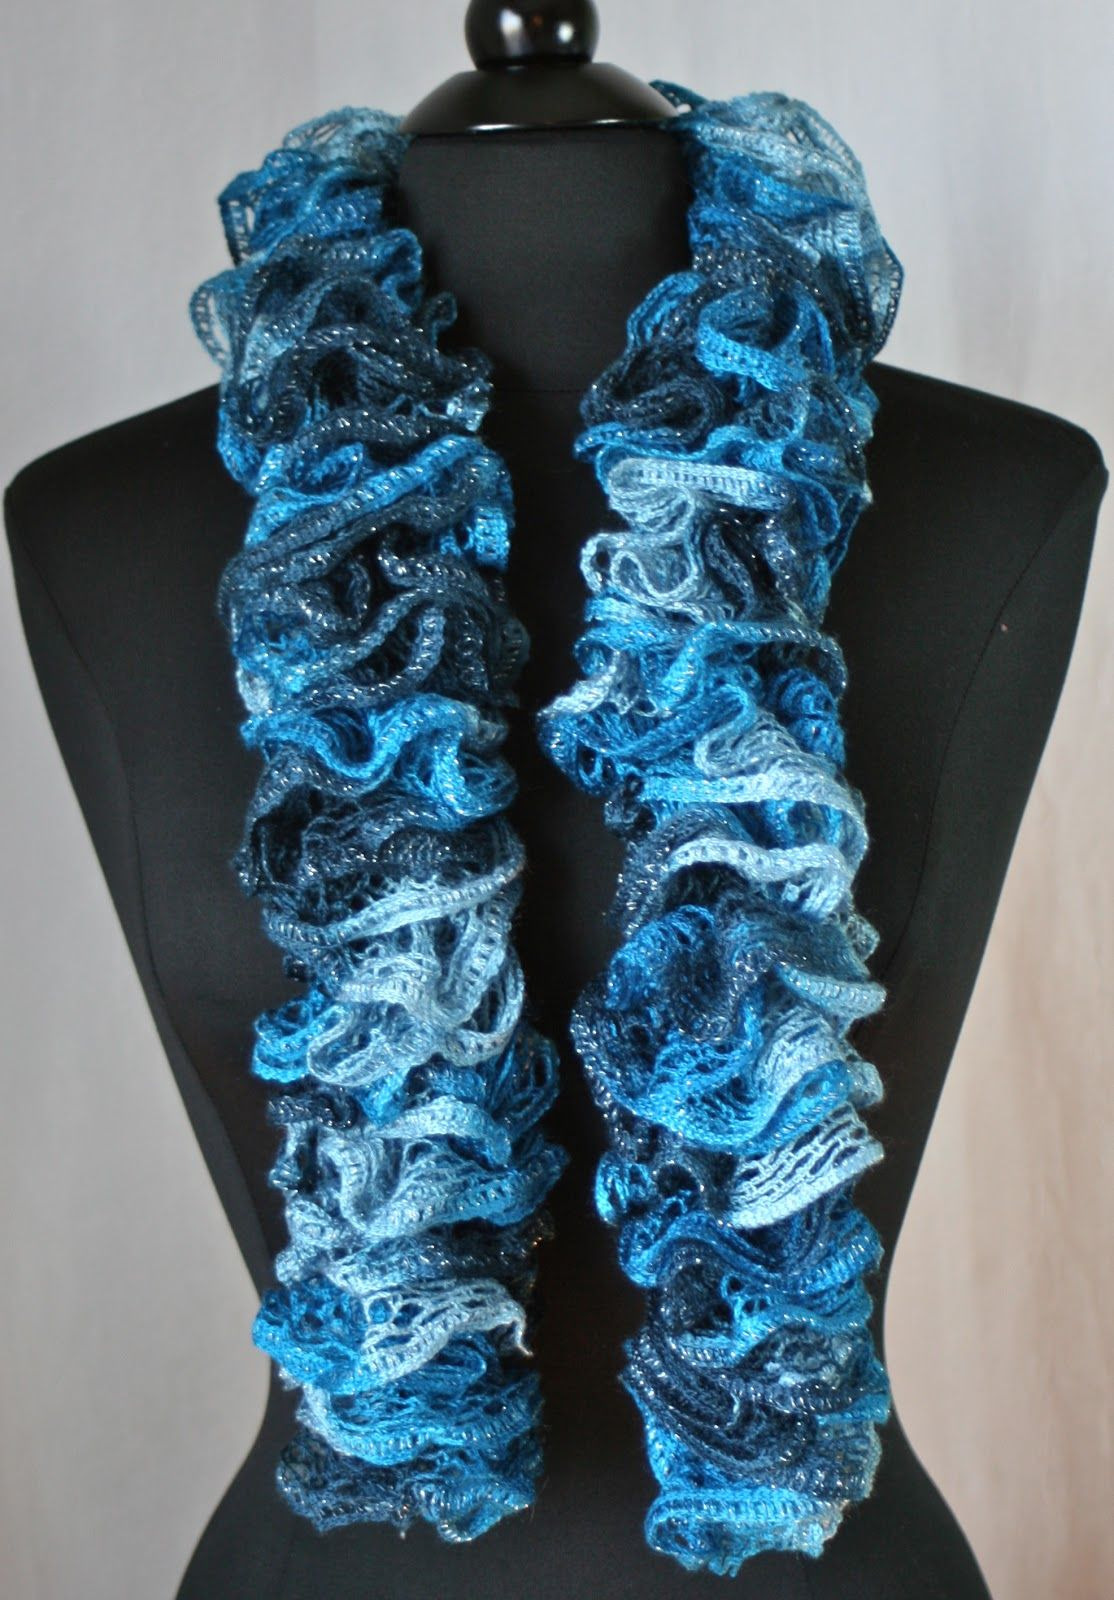 dcfbade8bfd61 Crocheted Ruffled Scarves - Sashay vs. Starbella | Cozy crochet ...